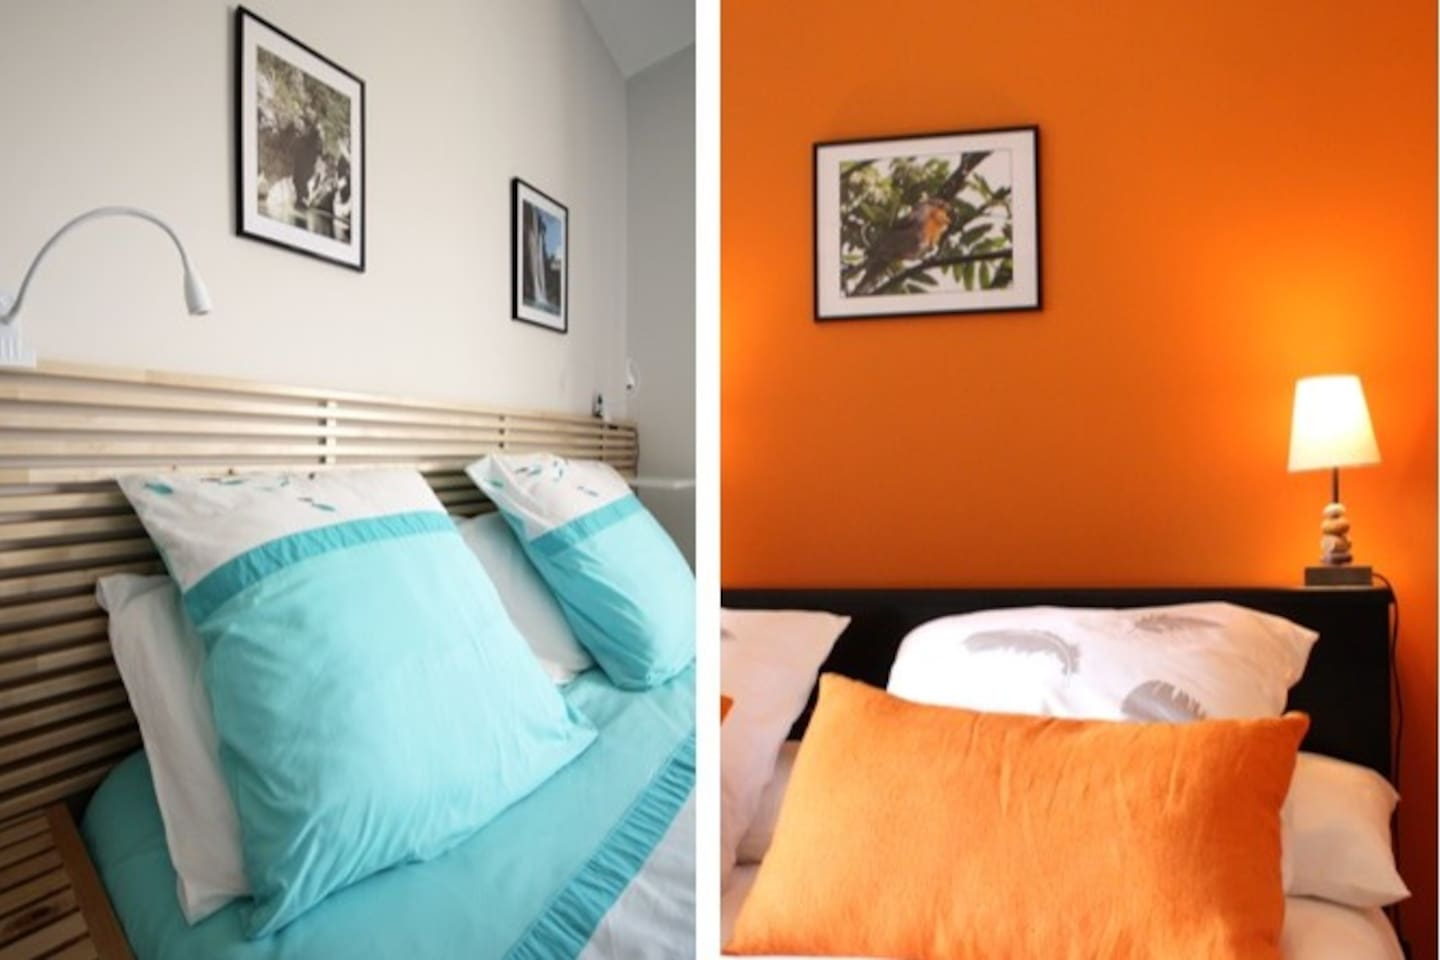 Turquoise ambiance Clapotis Ambre ambiance plume